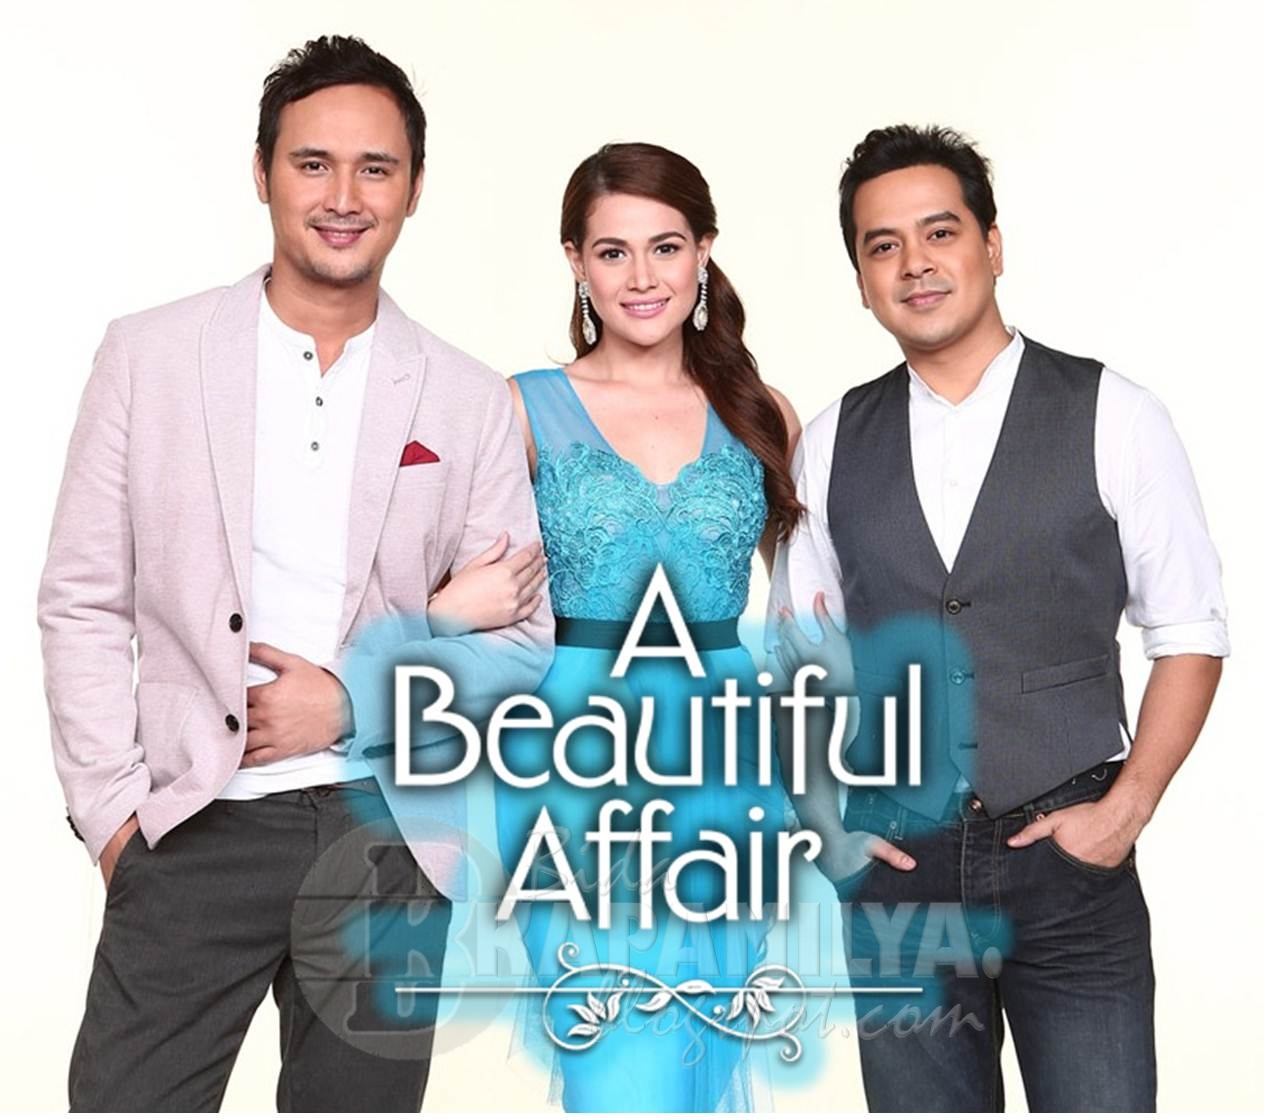 A BEAUTIFUL AFFAIR - OCT. 30, 2012 PART 3/4